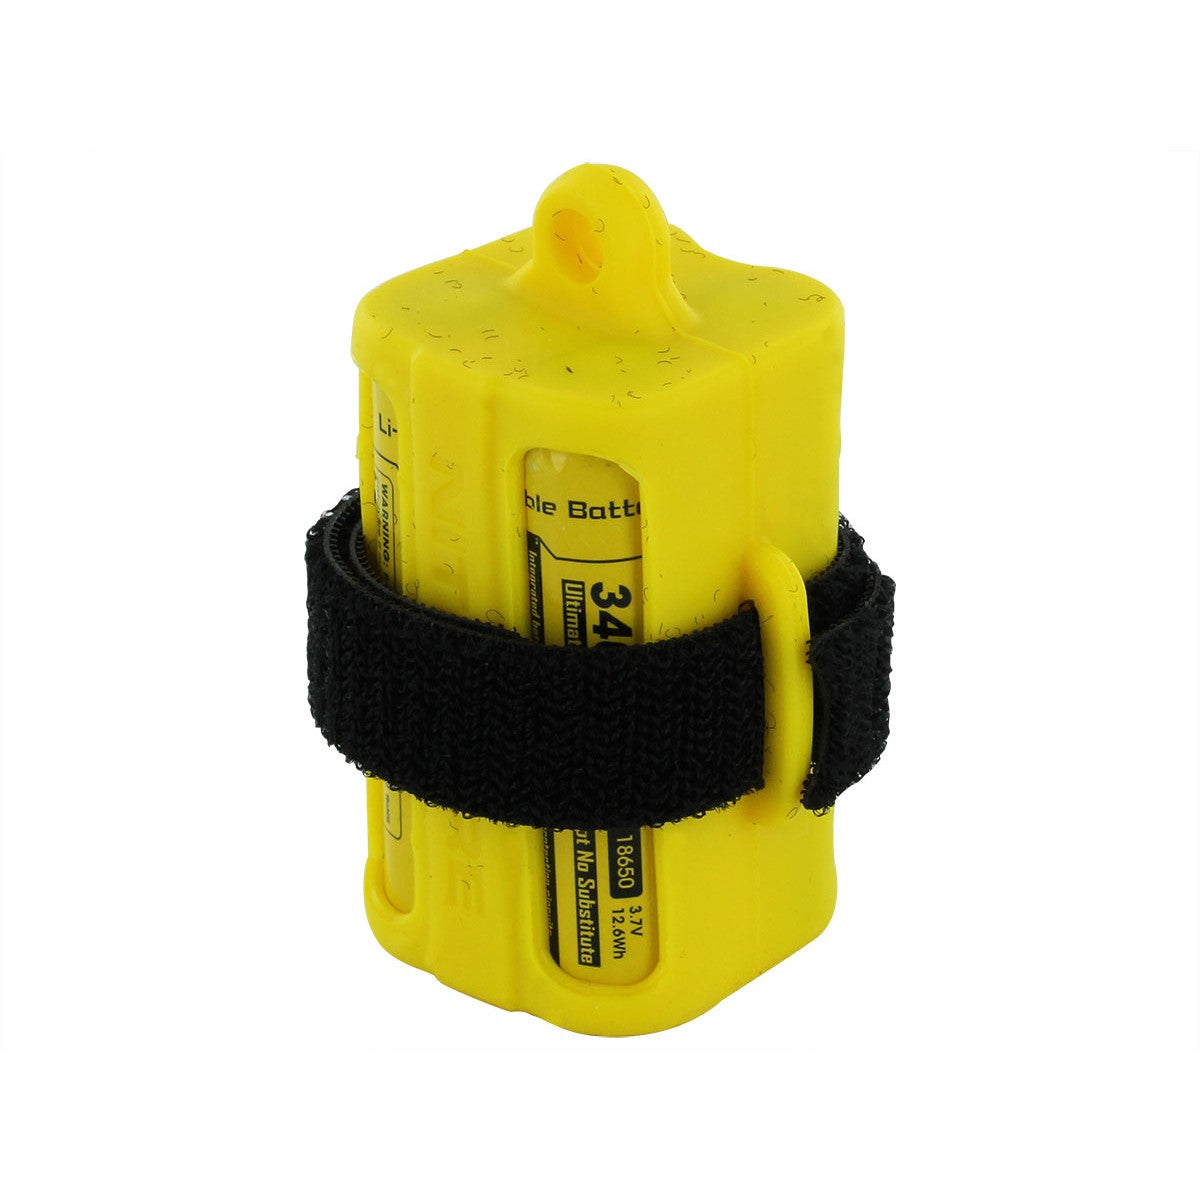 Nitecore Multi-Purpose Portable Battery Magazine (yellow) - Vapefiend UK